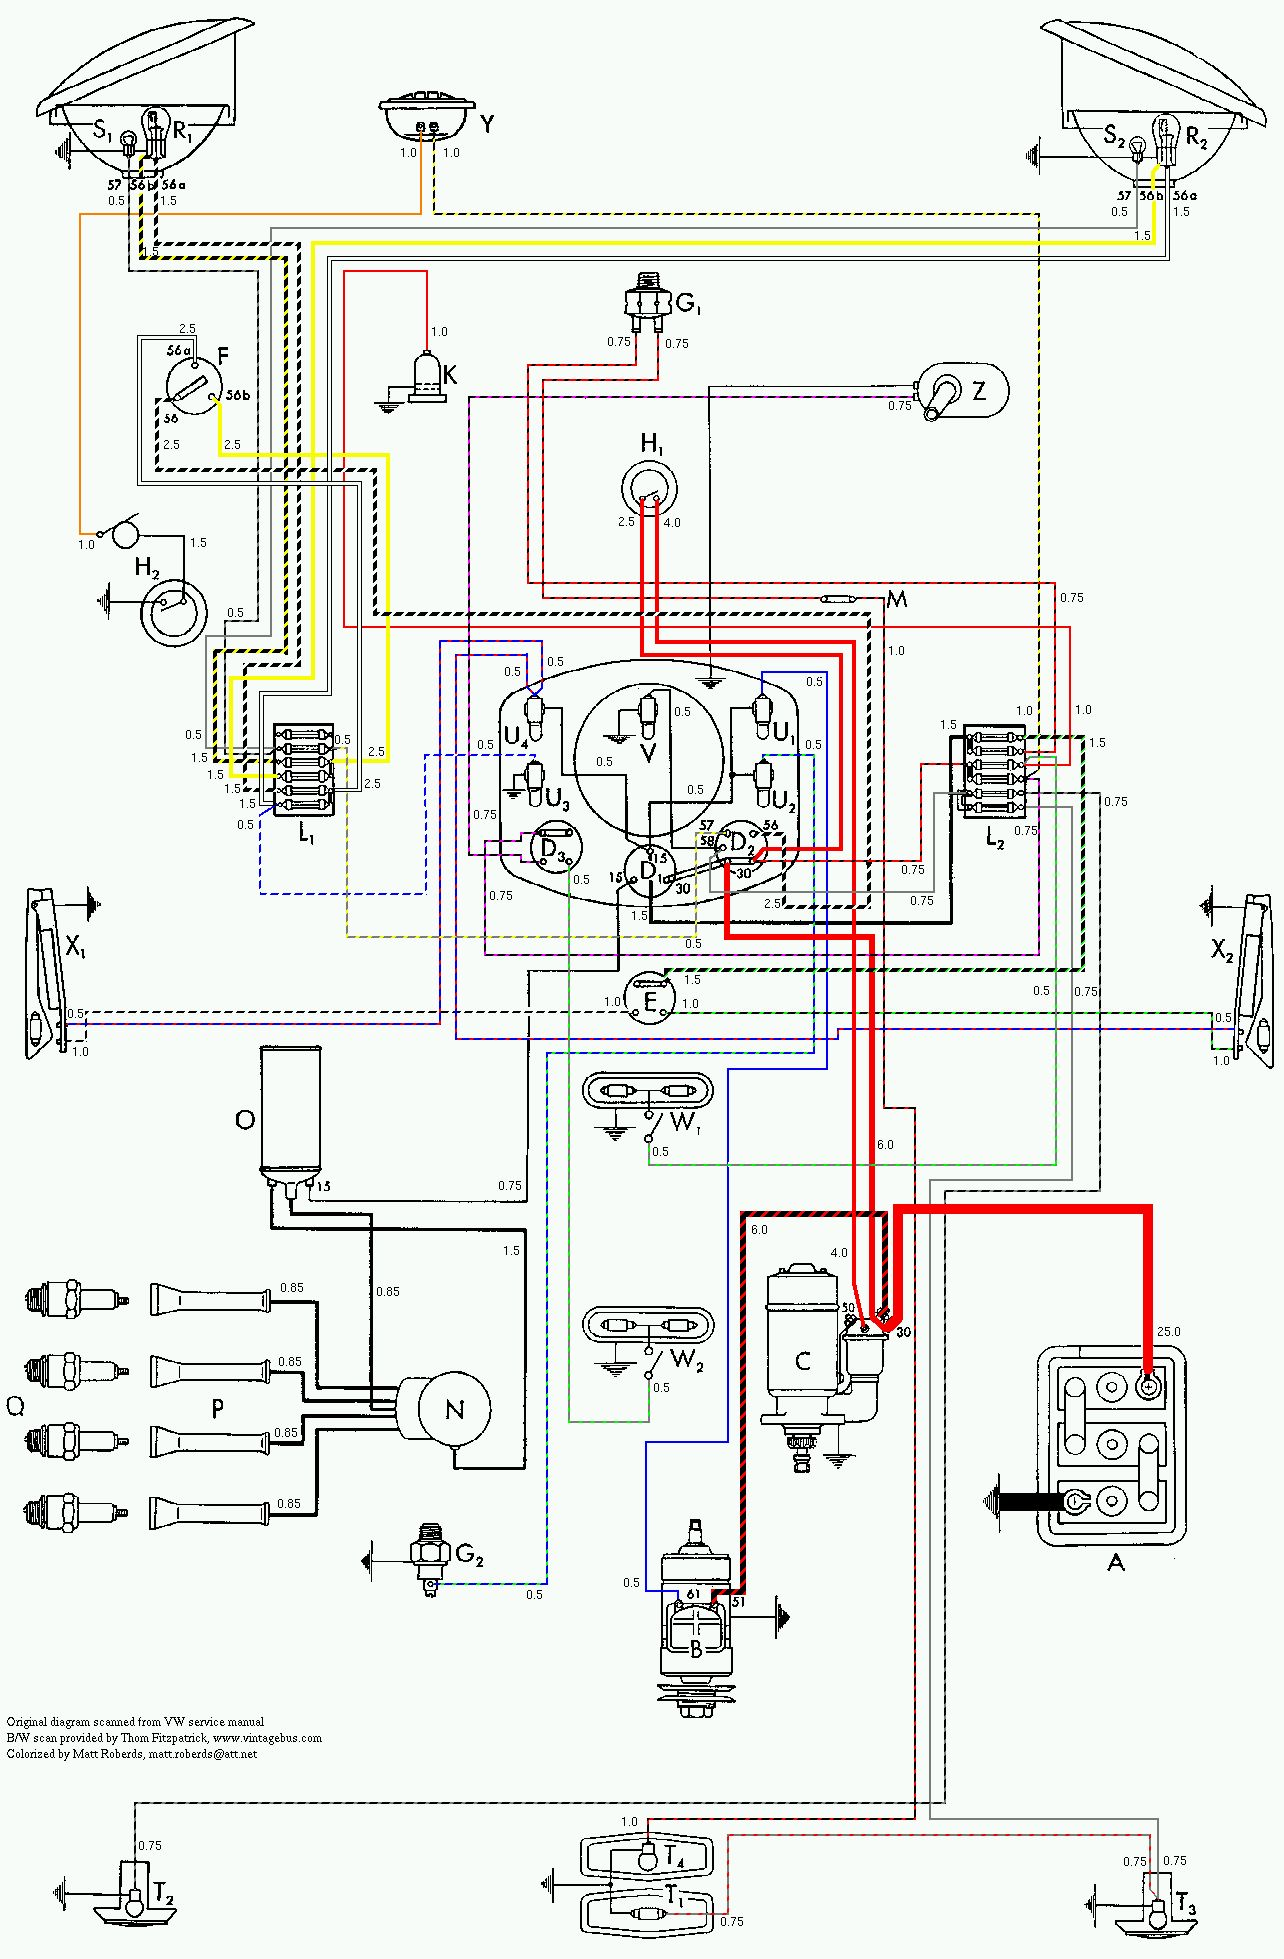 1990 Vw Jetta Wiring Diagram Alt Content Resource Of 2010 Speaker Vintagebus Com Bus And Other Diagrams Rh 97